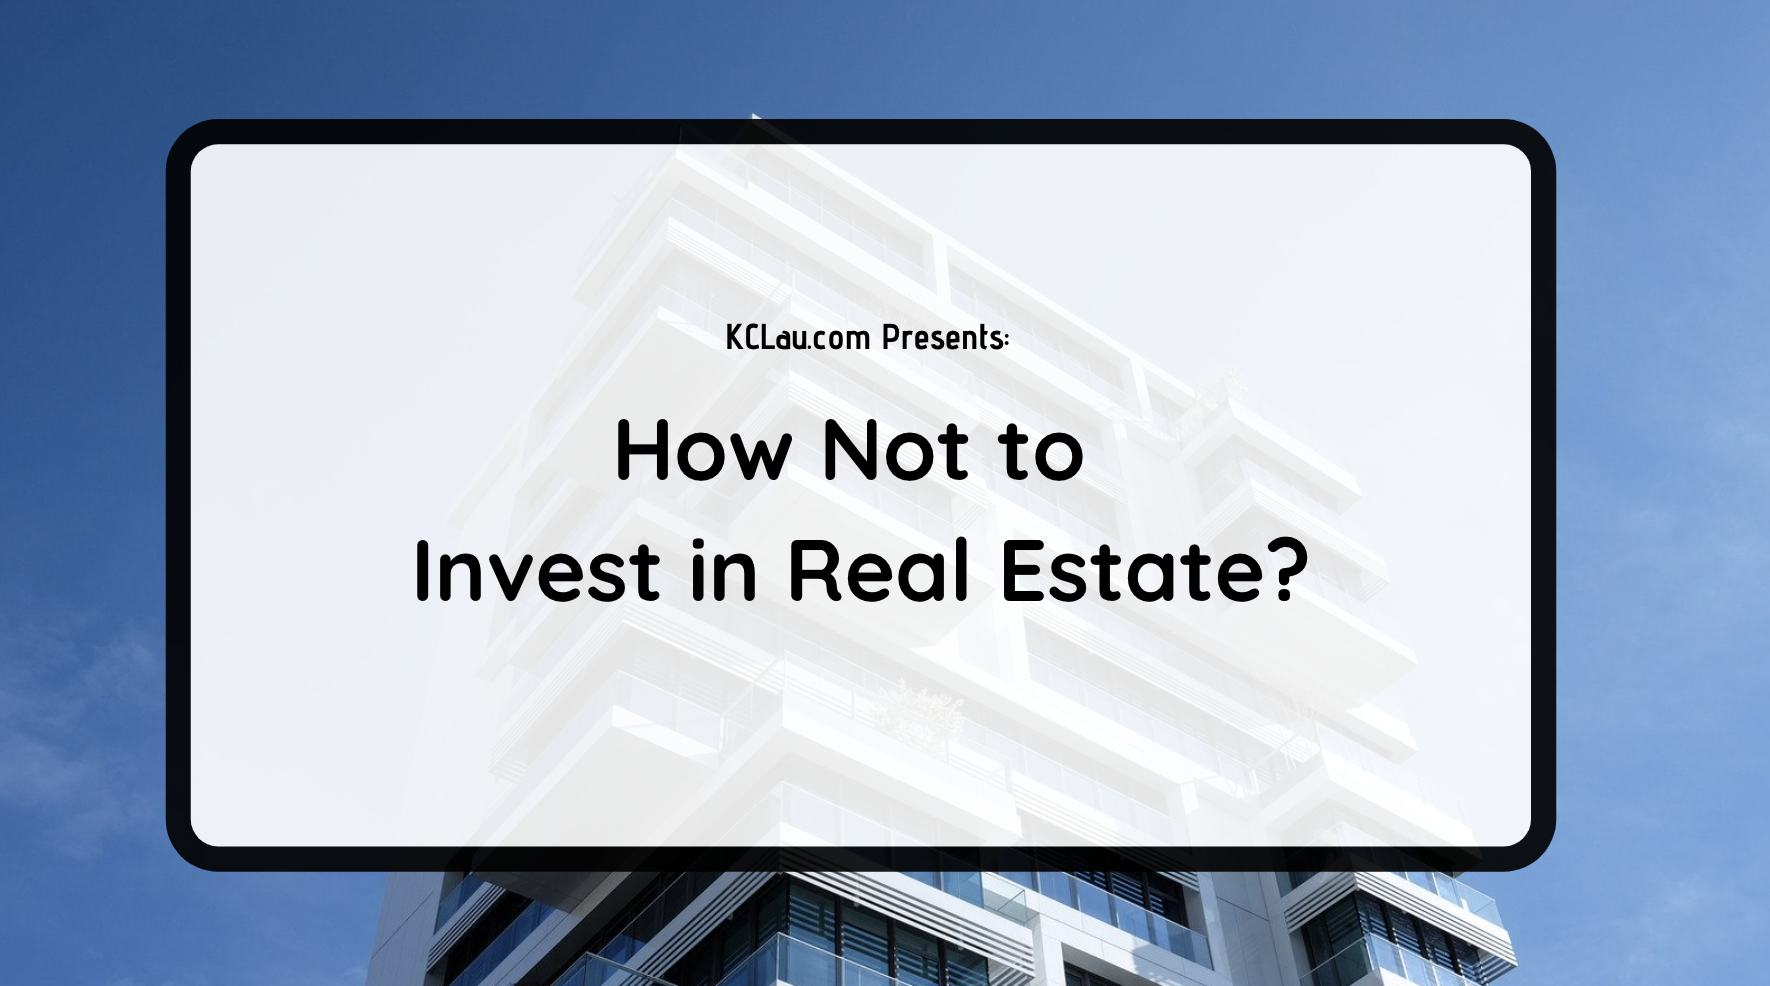 How Not to Invest in Real Estate?